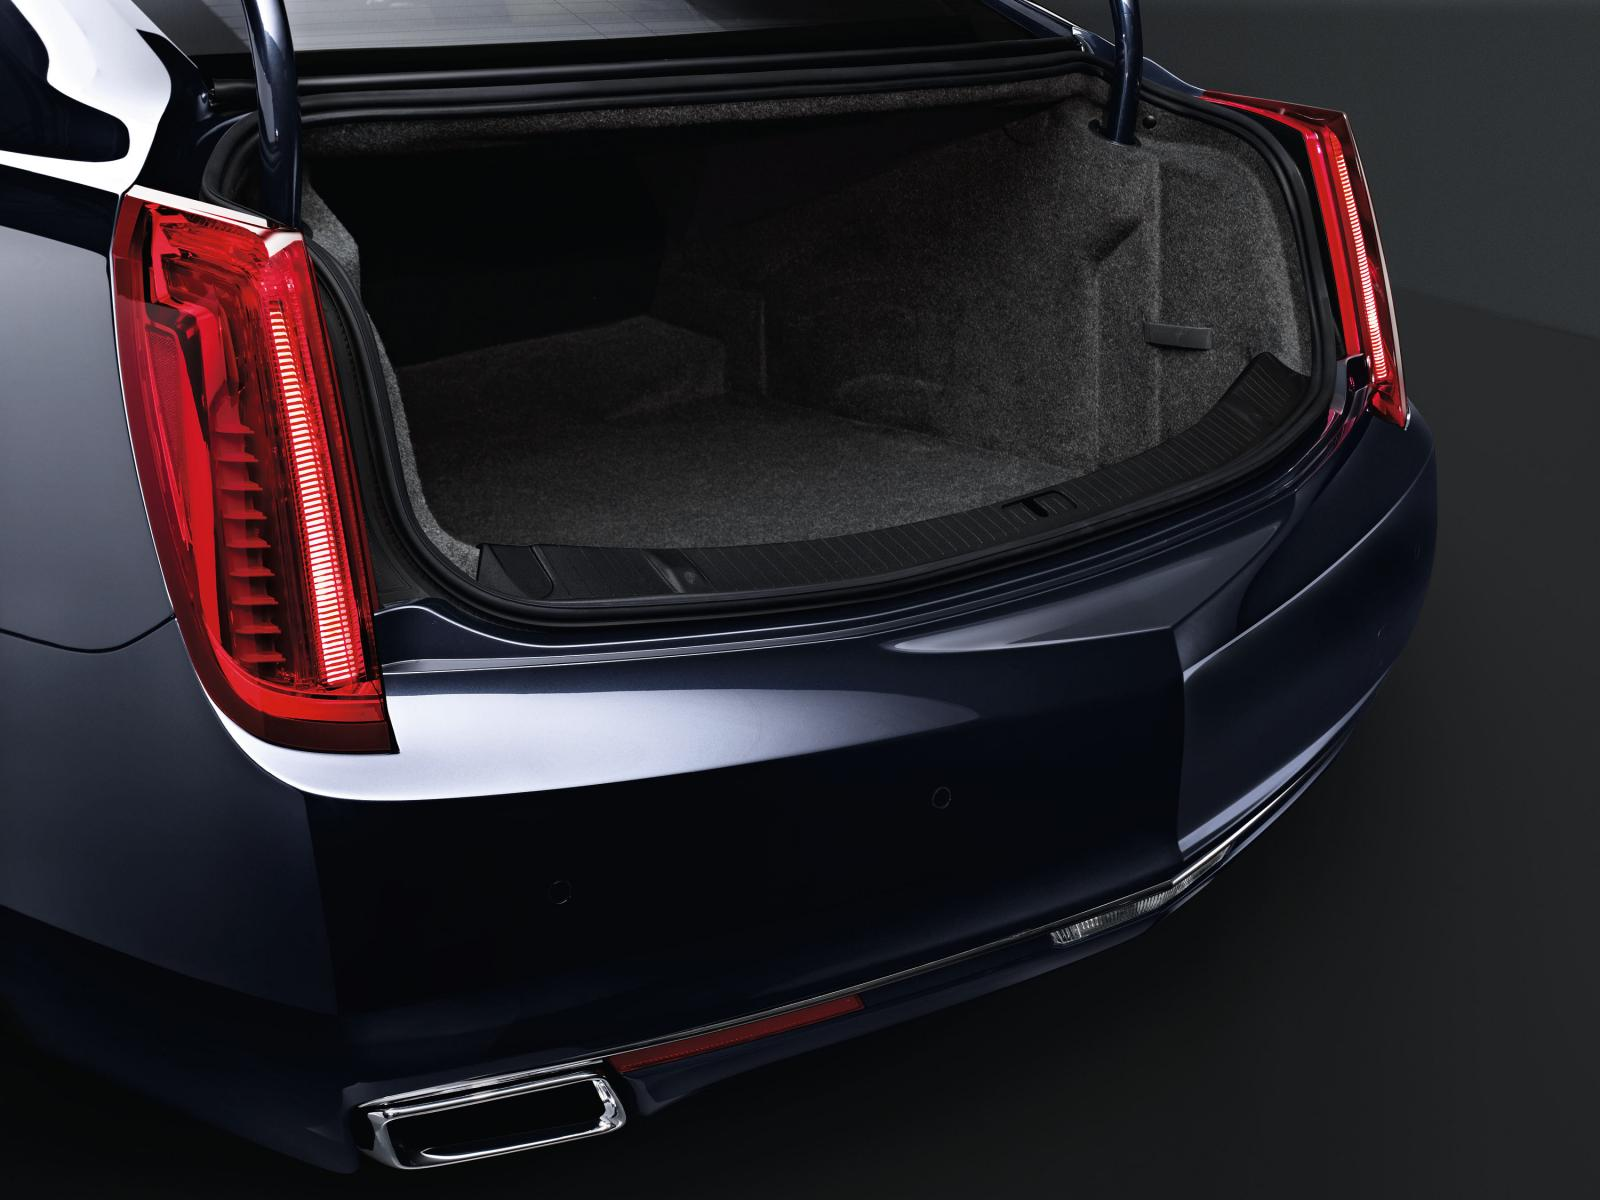 2014 cadillac xts gets twin turbo v6 with 410 hp. Cars Review. Best American Auto & Cars Review